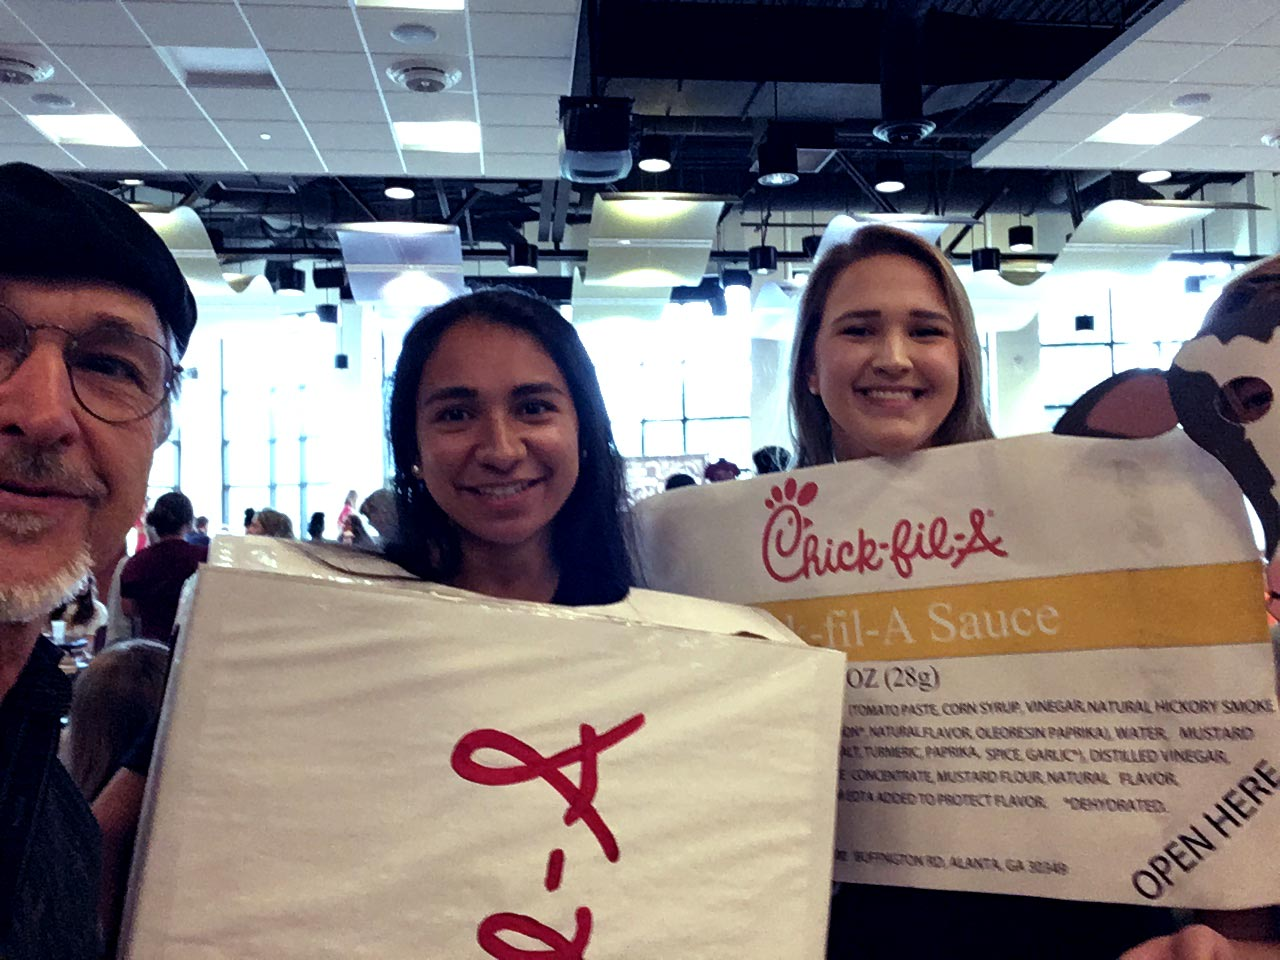 Tampa Students in Chick-Fil-A costumes